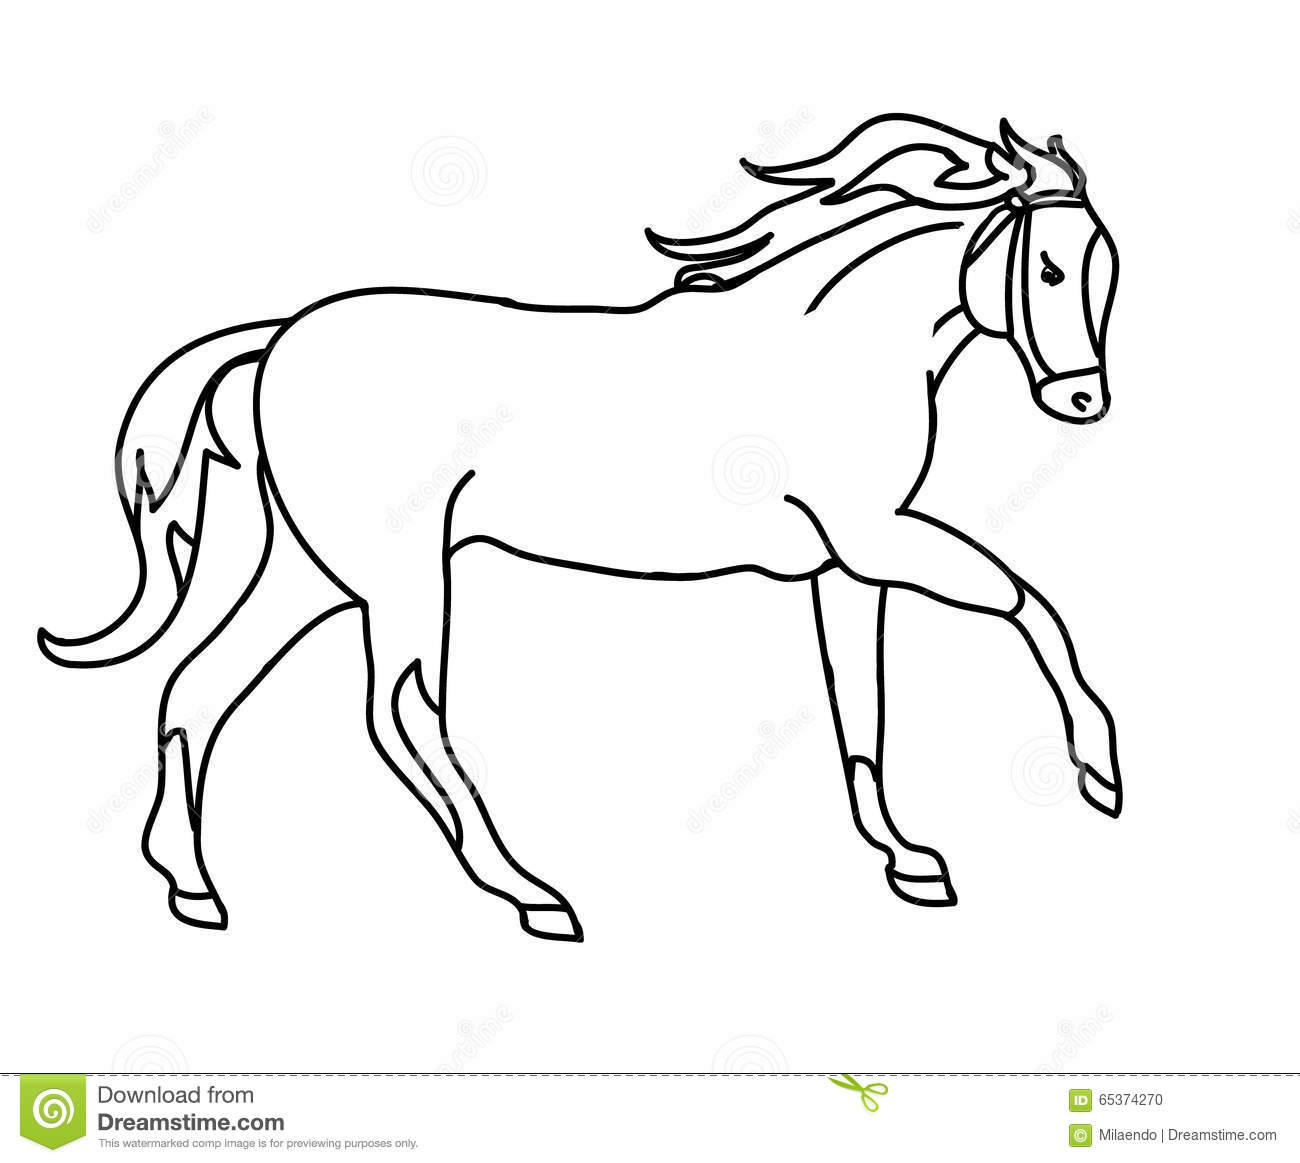 The Silhouette Of A Horse Gallop Black Outline Stock